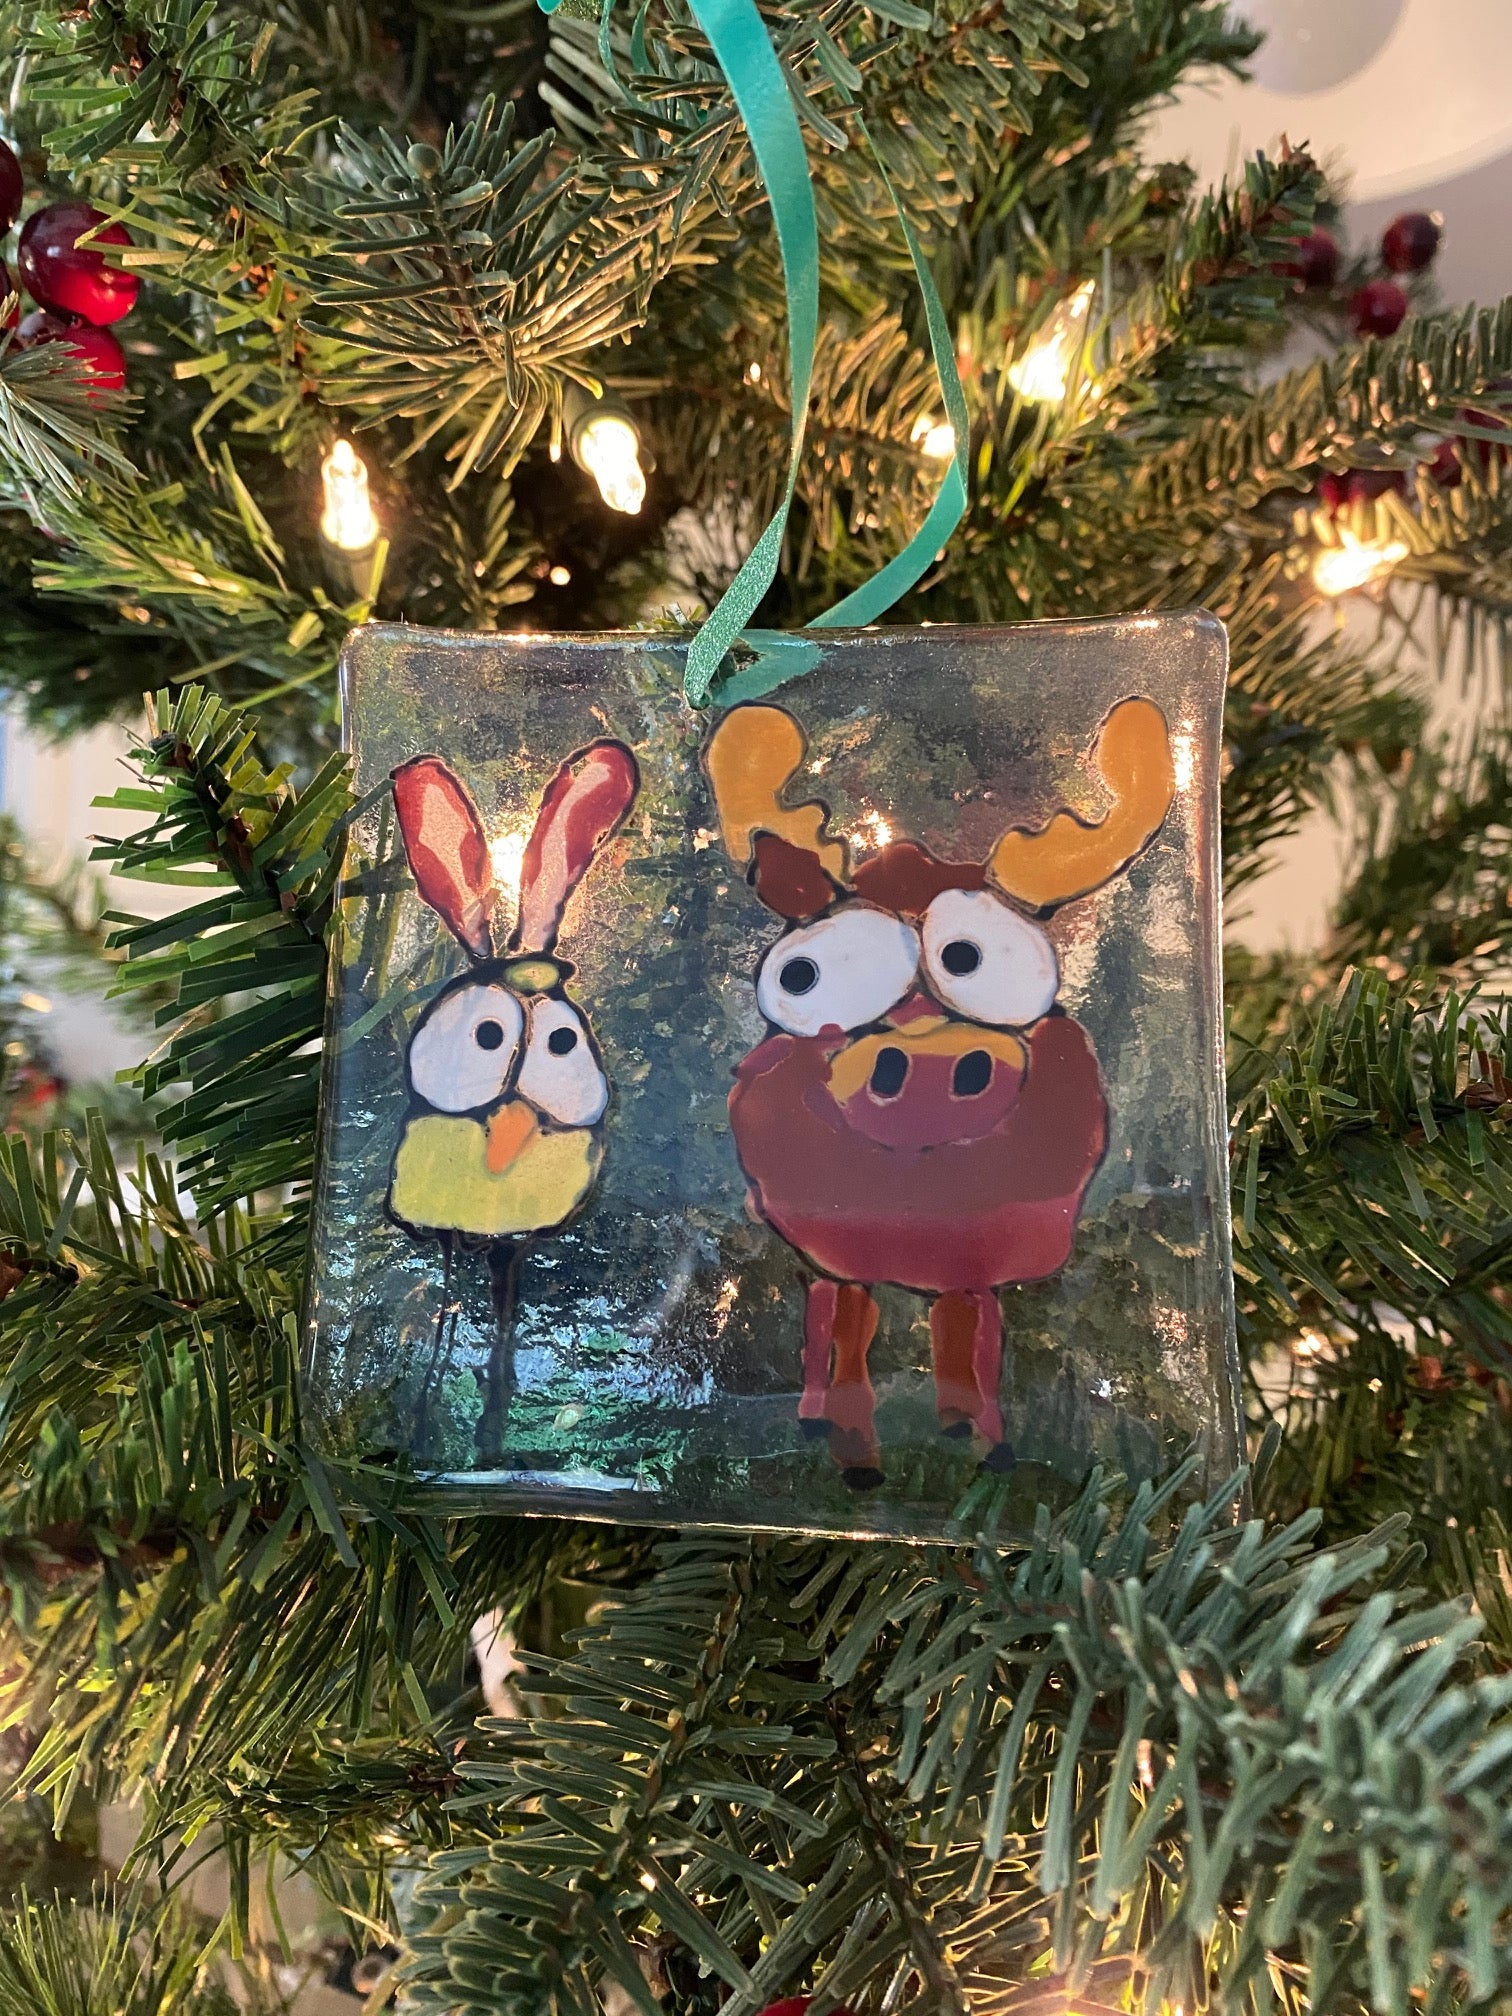 Marty the Moose and Peanut the Bird - Hand Painted Ornament